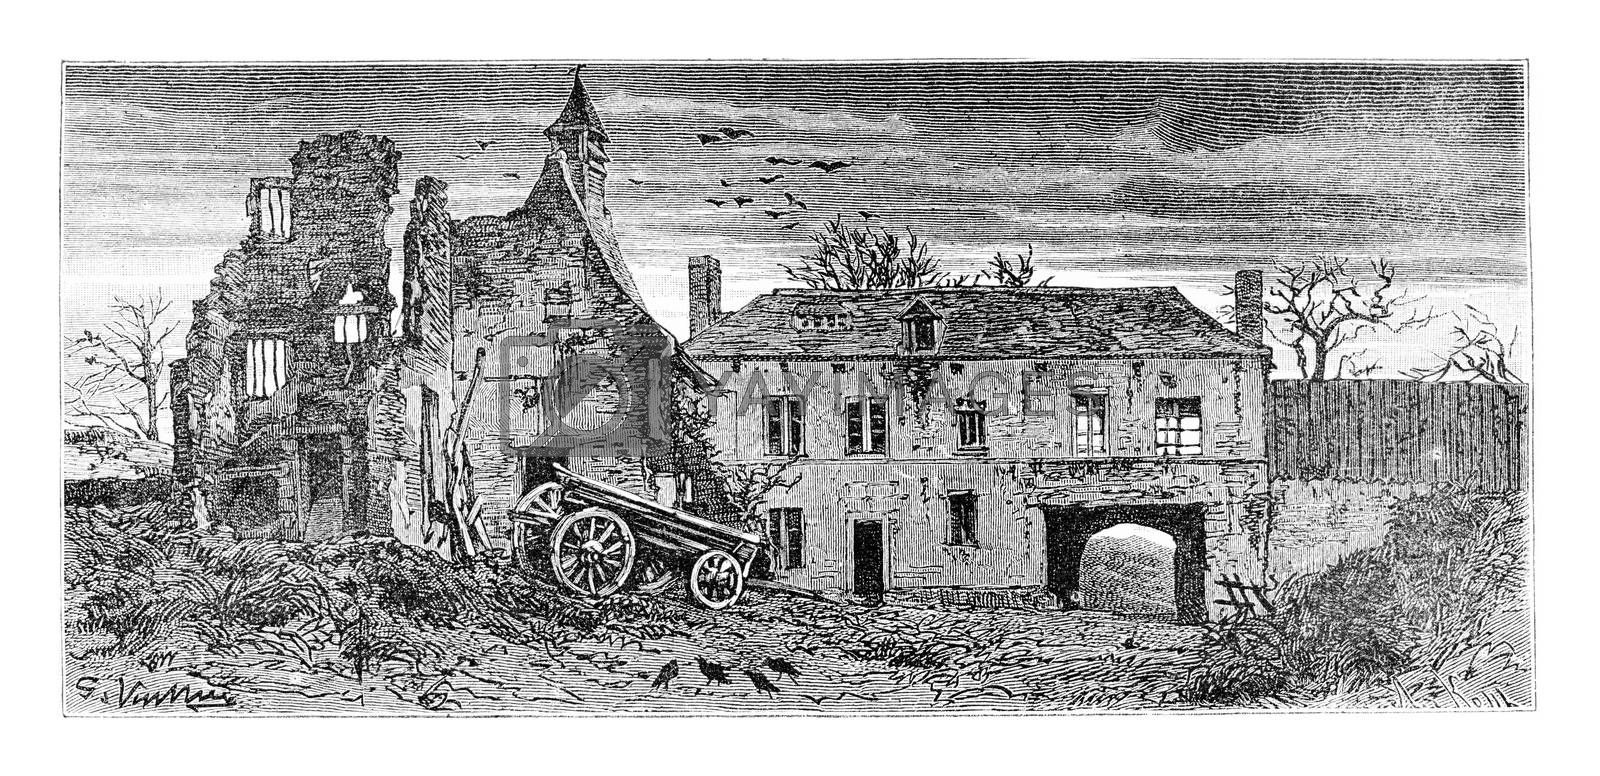 Hougomont Farm in Waterloo, Belgium, drawing by Vuillier based on a photograph, vintage illustration. Le Tour du Monde, Travel Journal, 1881